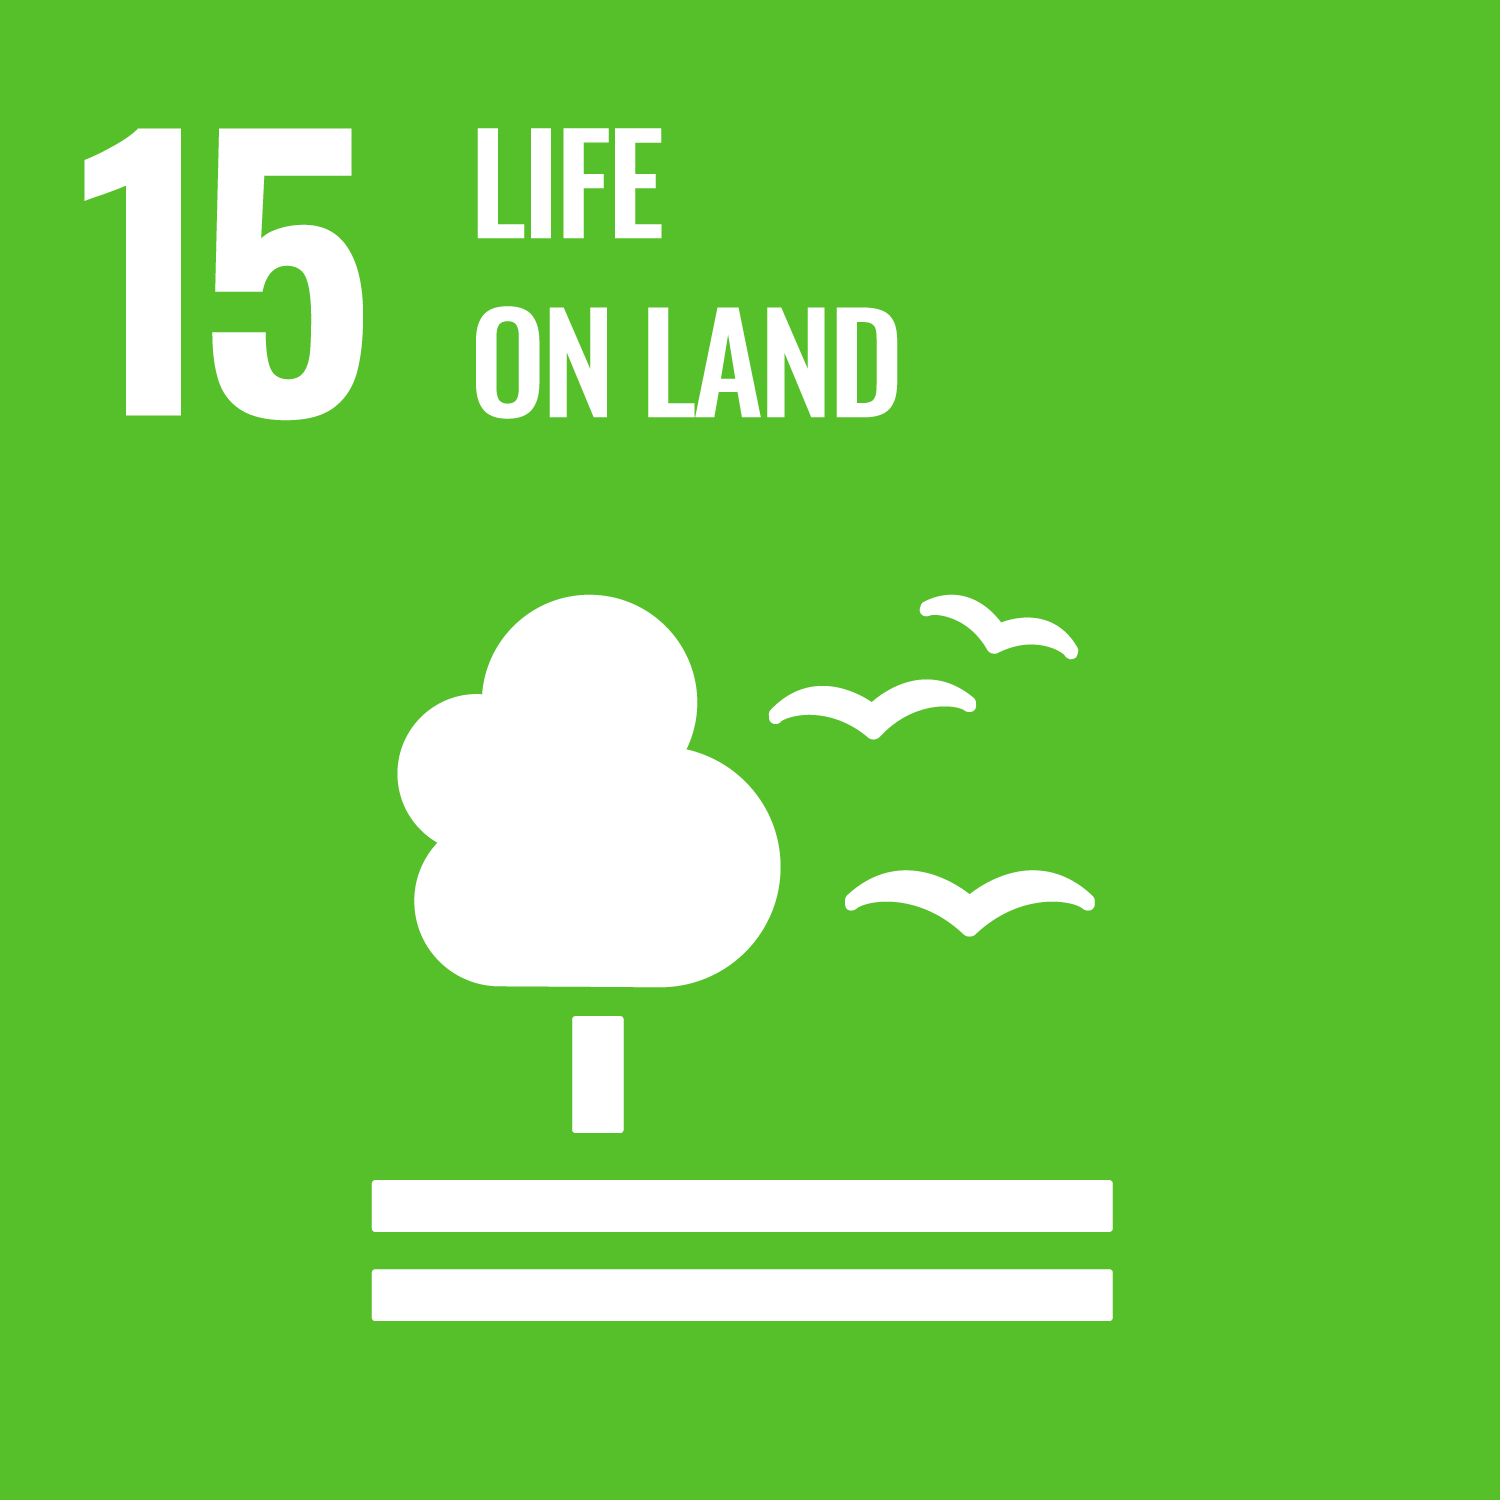 Protect, restore and promote sustainable use of terrestrial ecosystems, sustainably manage forests, combat desertification, and halt and reverse land degradation and halt biodiversity loss